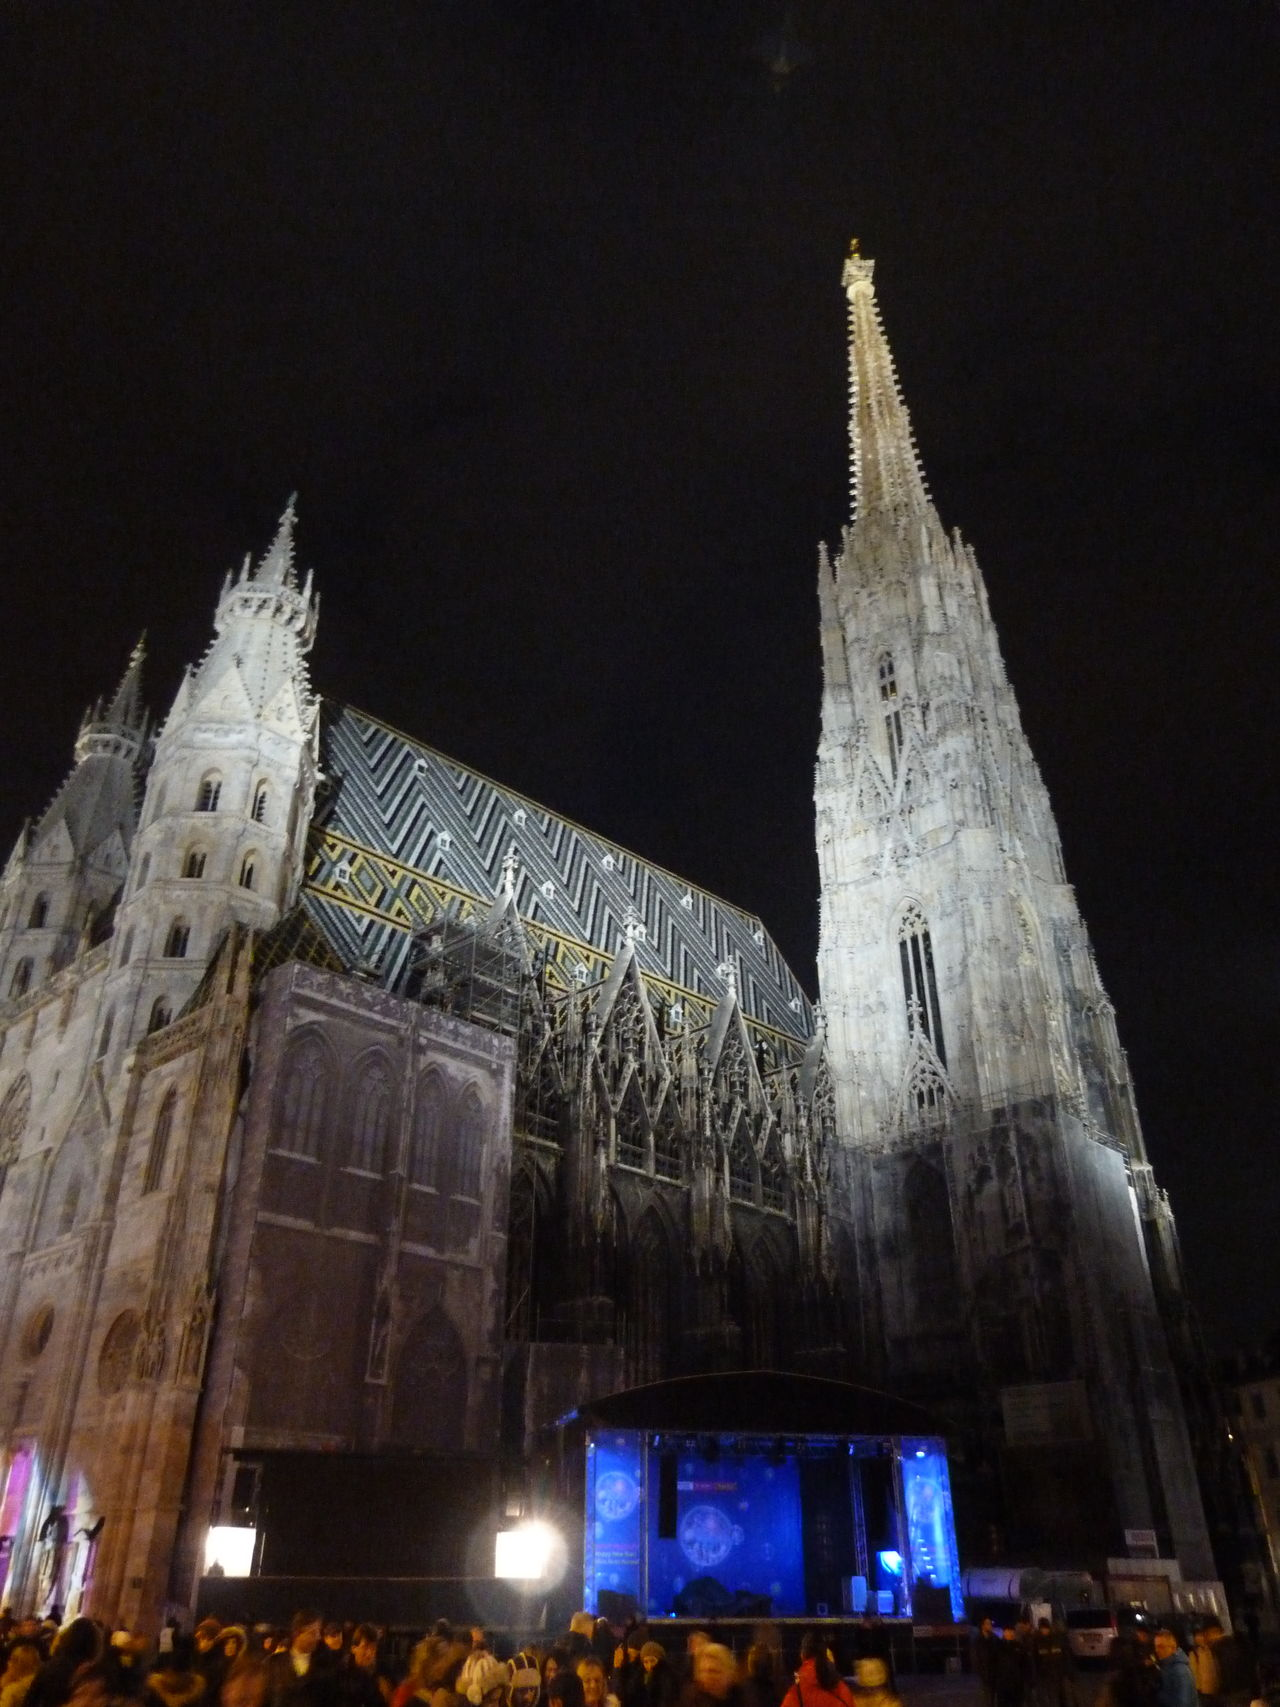 Architecture Night Place Of Worship Low Angle View Travel Destinations City Illuminated Stephansdom Church Vienna Austria Night Photography